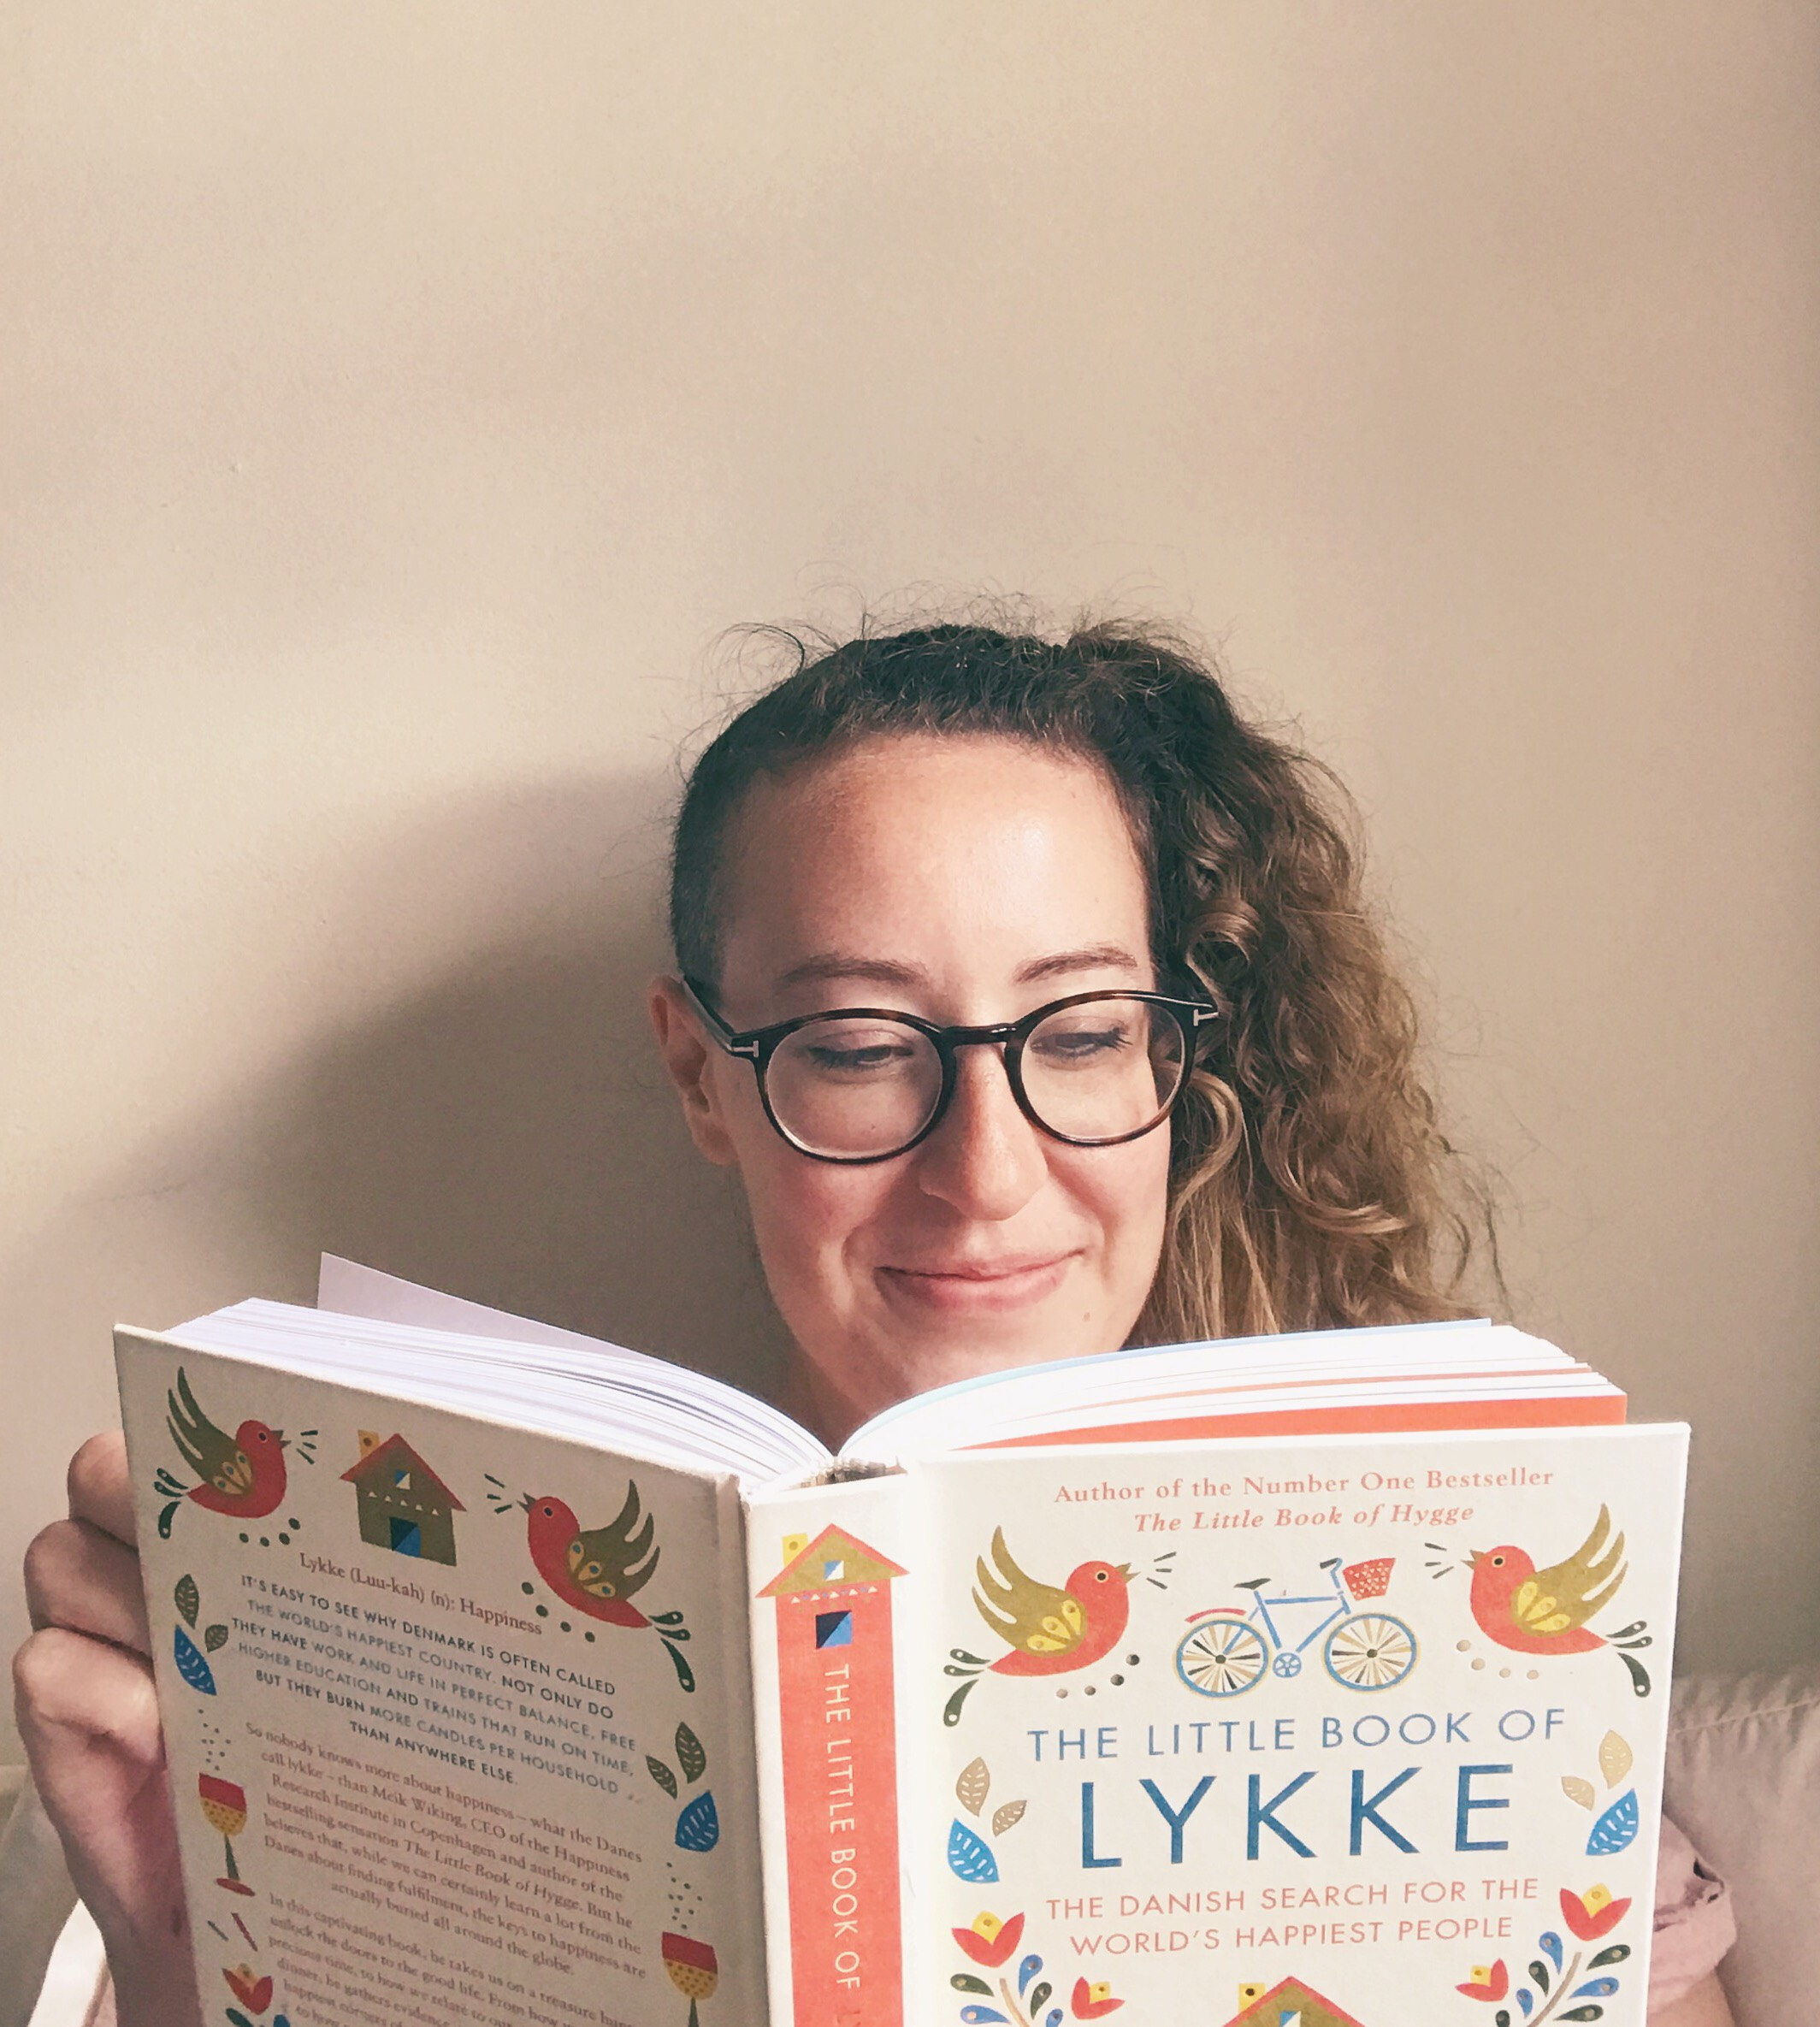 the-little-book-of-lykke-4